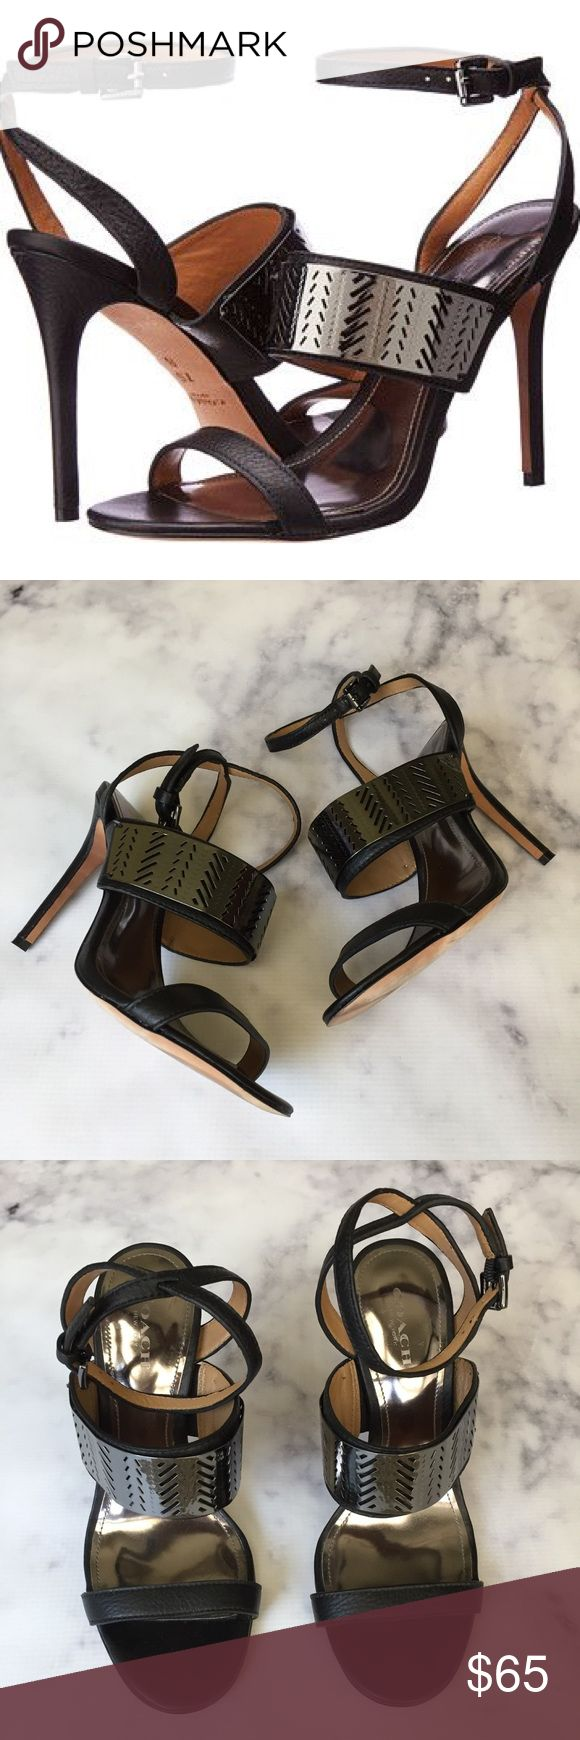 """COACH Black Hadley Embellished Ankle Strap Heels super fun black leather Hadley ankle strap heels from COACH. Feature perforated metal band on top strap. leather upper and sole. excellent condition - worn just twice. 4"""" heels. size 6. 7I2158. Coach Shoes Heels"""